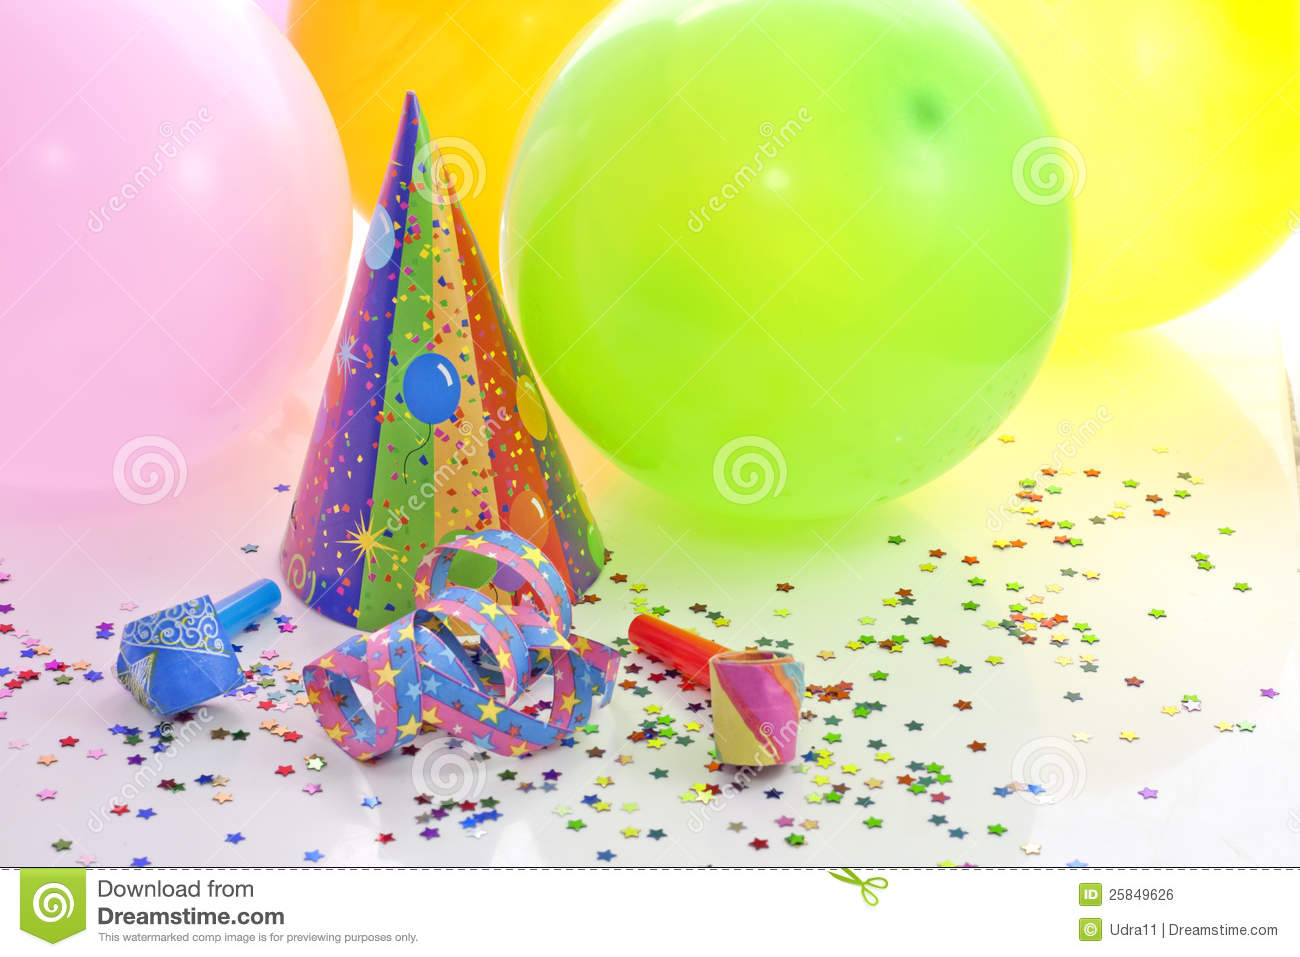 birthday party wallpaper background ; party-birthday-new-year-background-25849626